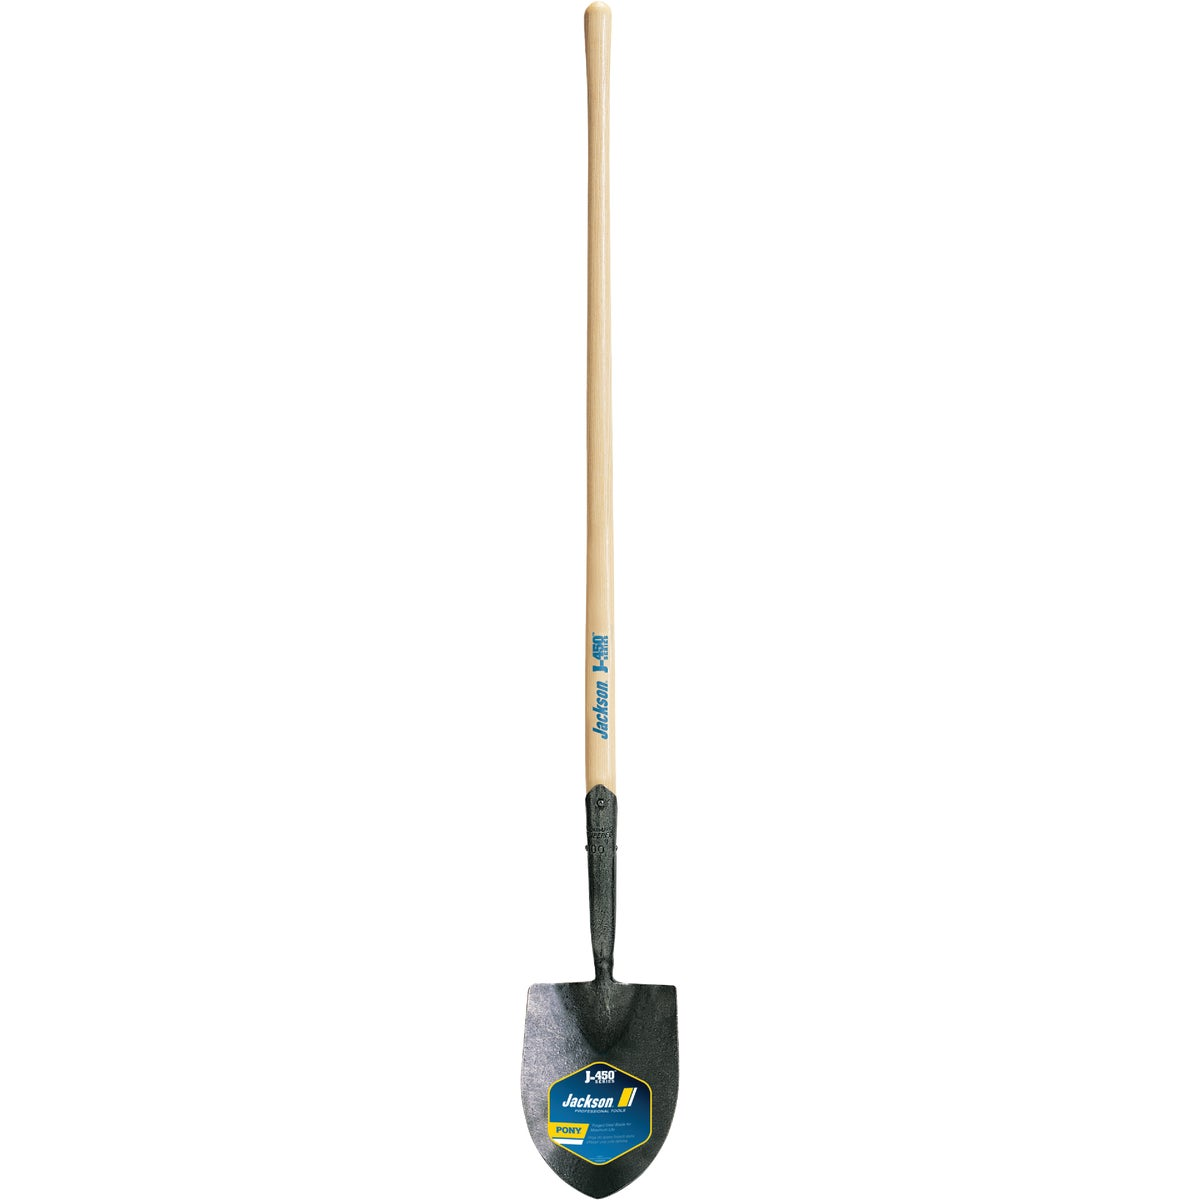 IRRIGATION SHOVEL